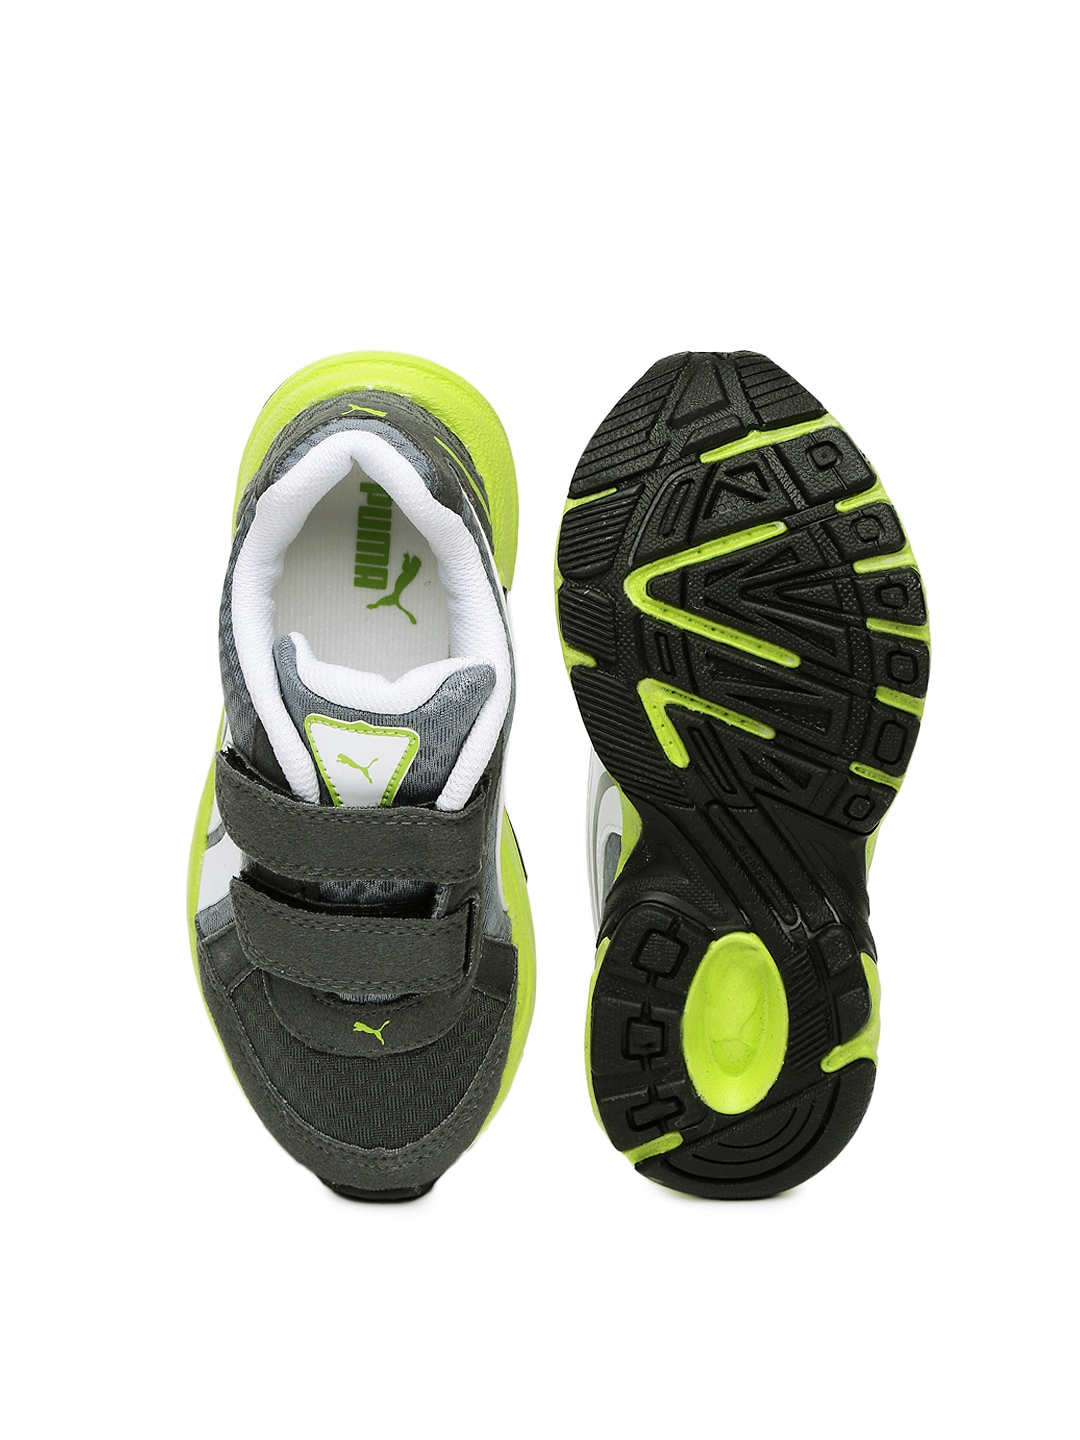 Running Shoes With Velcro Closures